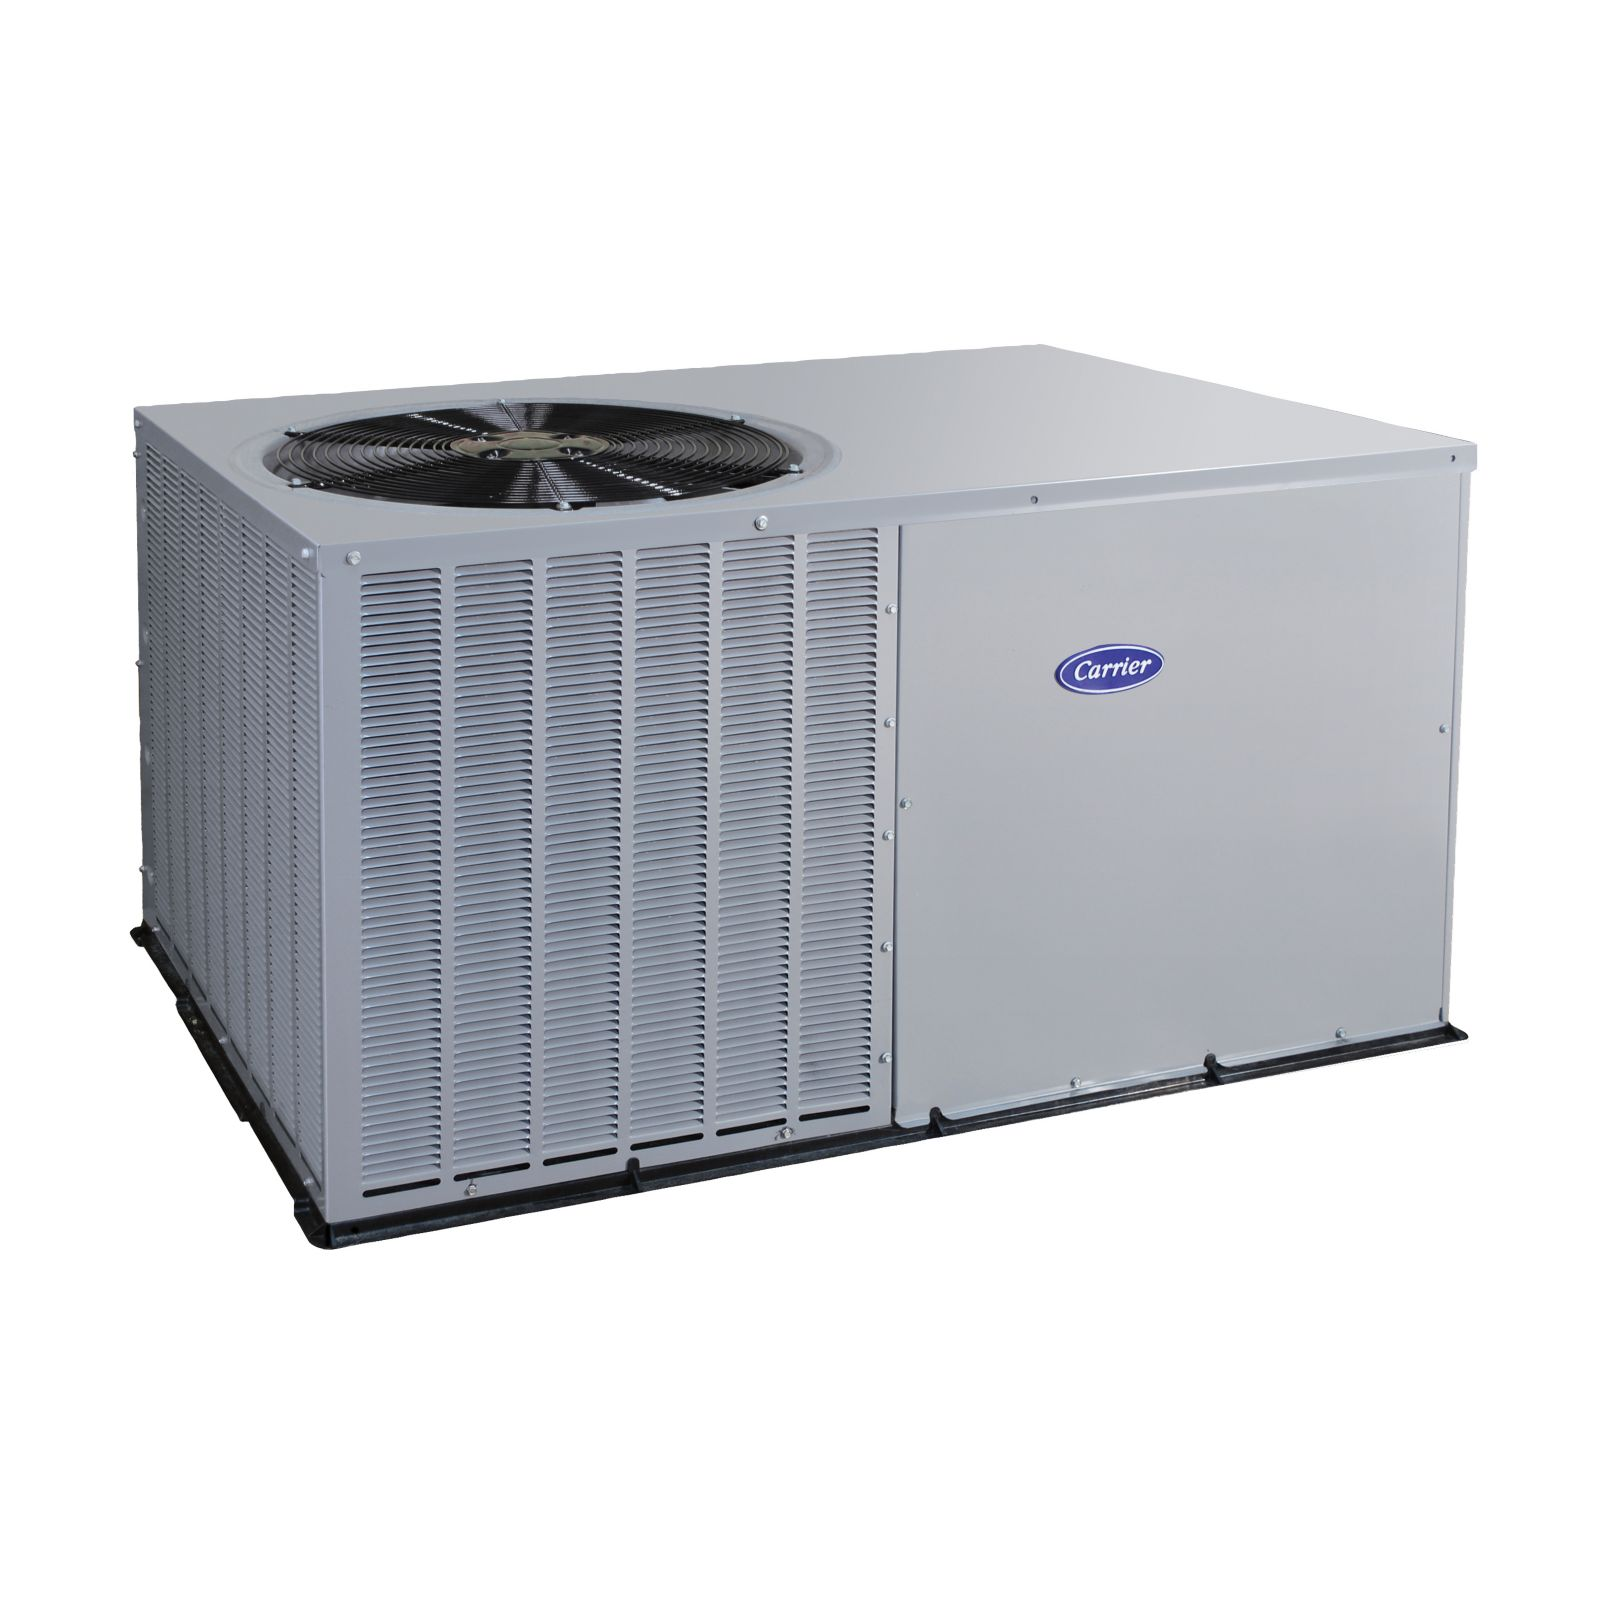 Carrier® Comfort™ - 5 Ton 14 SEER Residential Packaged Air Conditioning Unit  (Tin-Plated Coil)